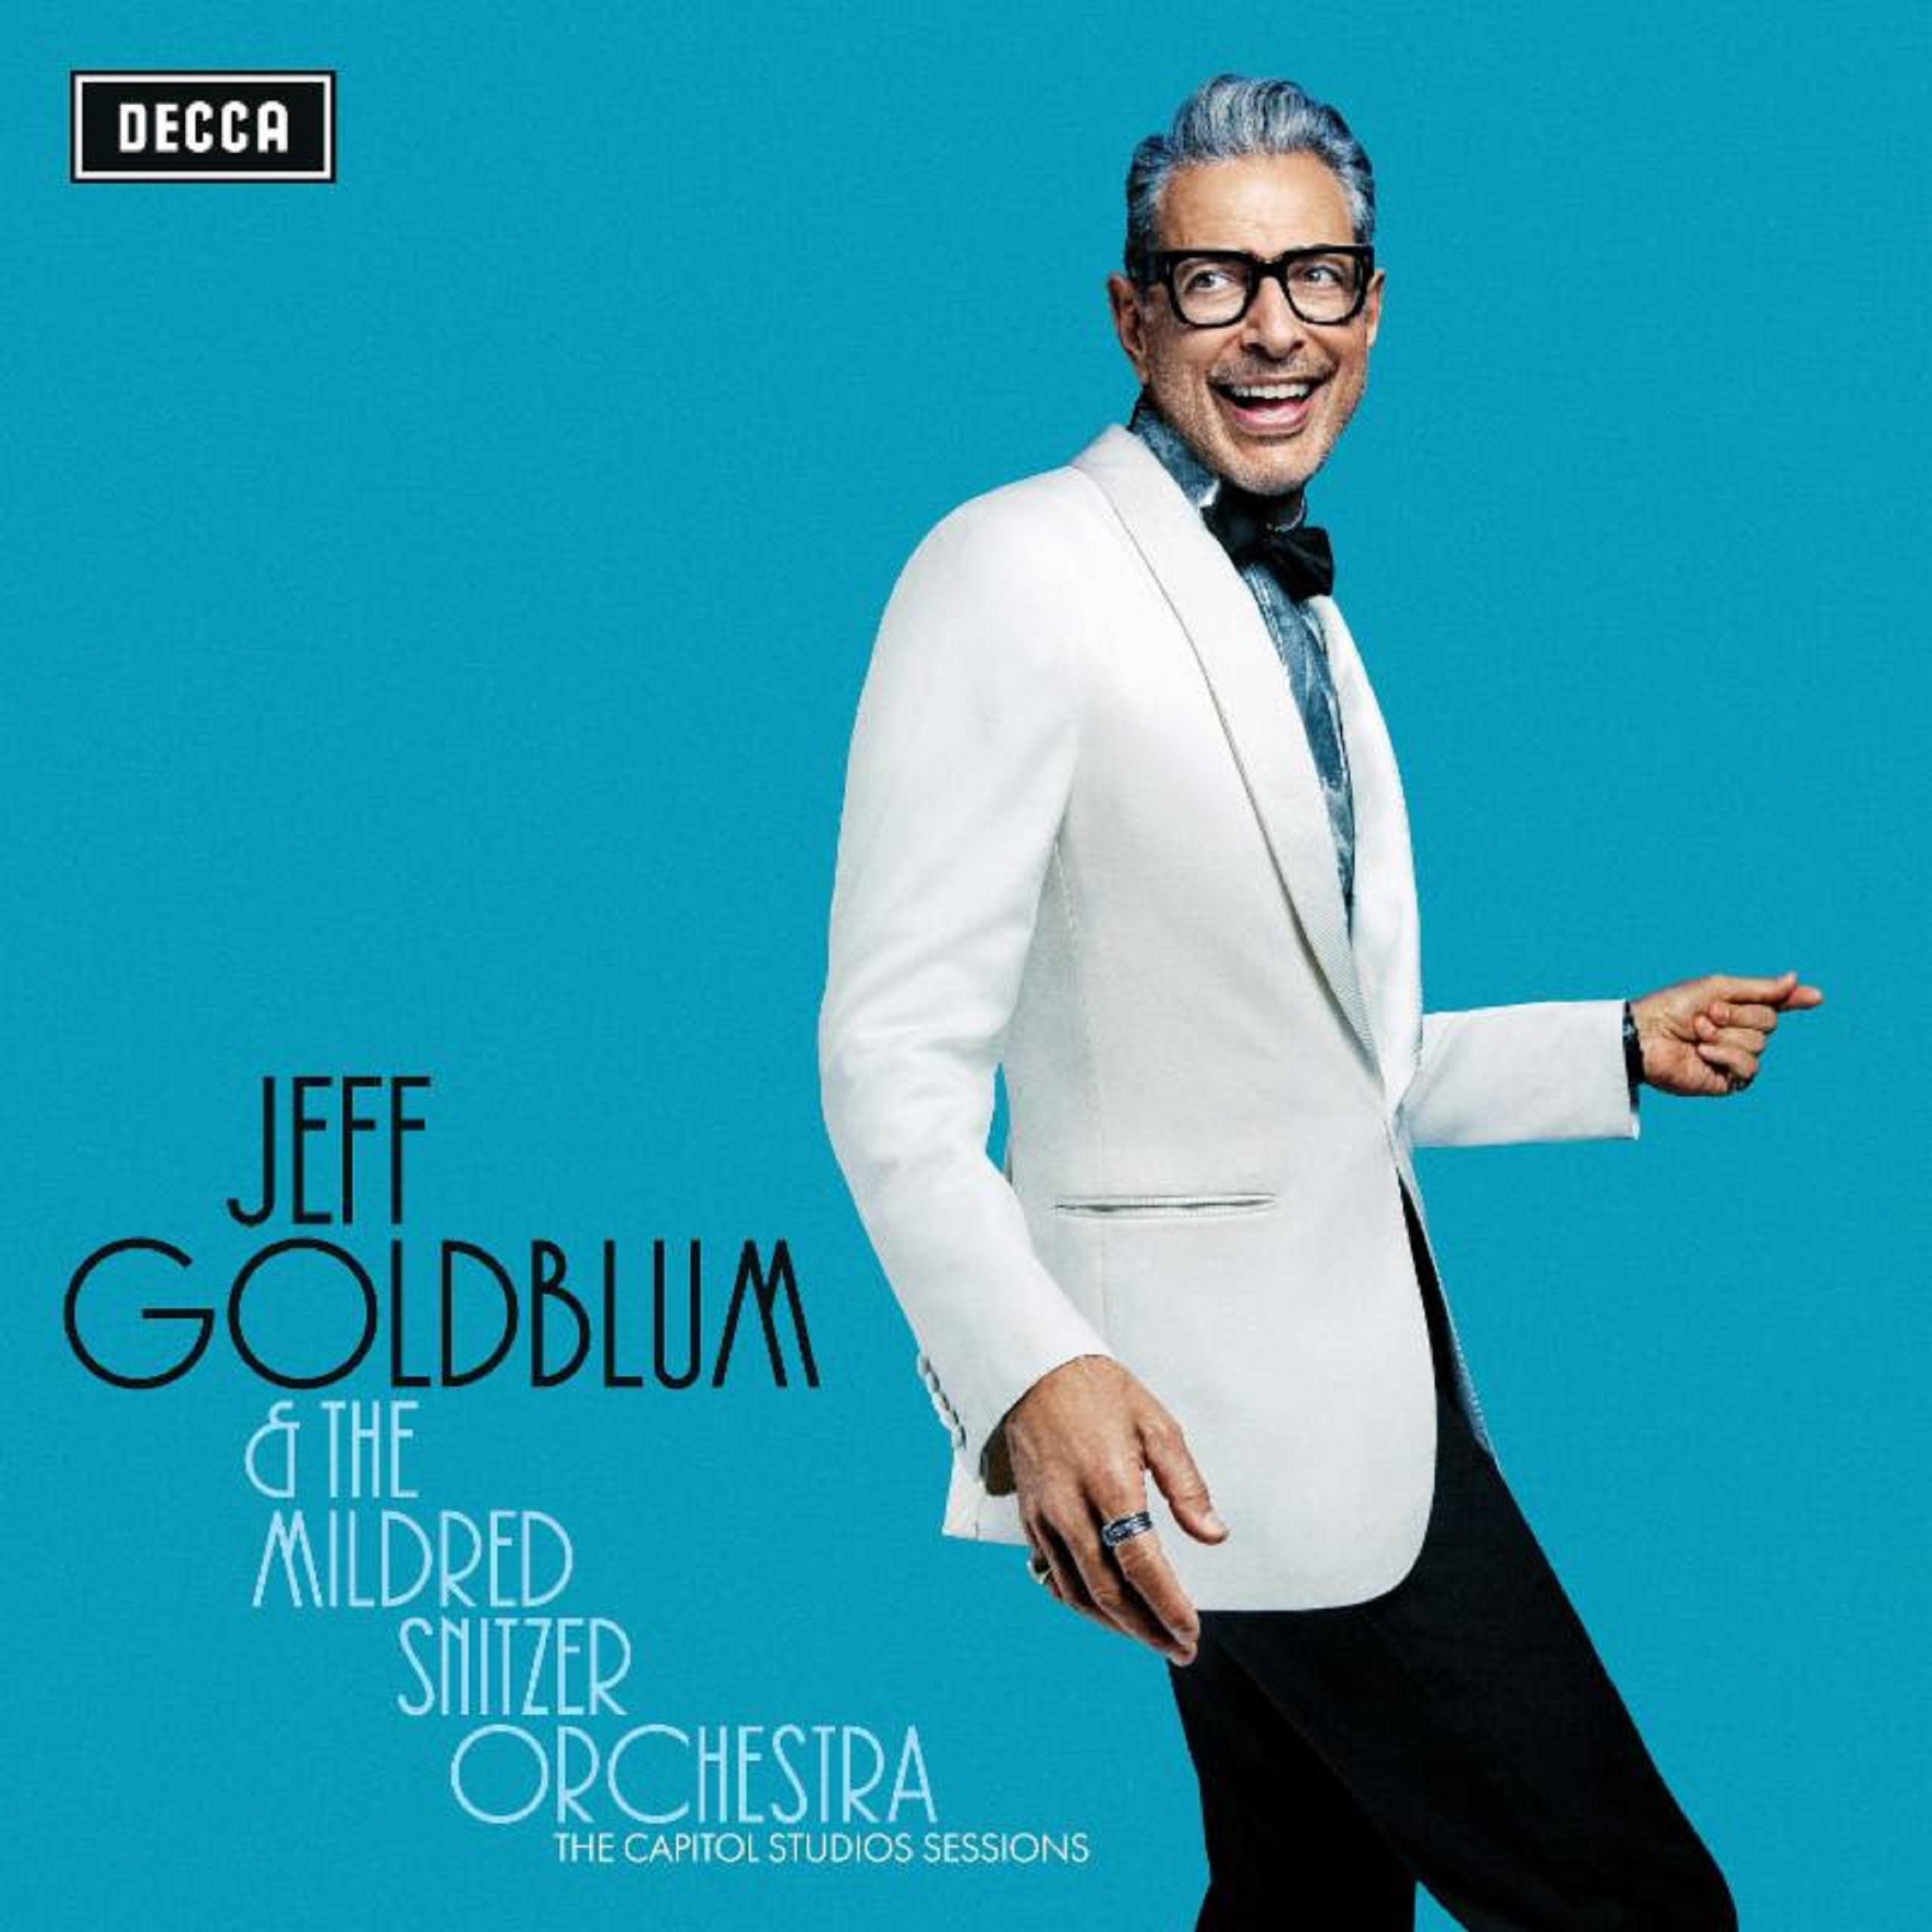 Jeff Goldblum Just Released The Capitol Studios Sessions